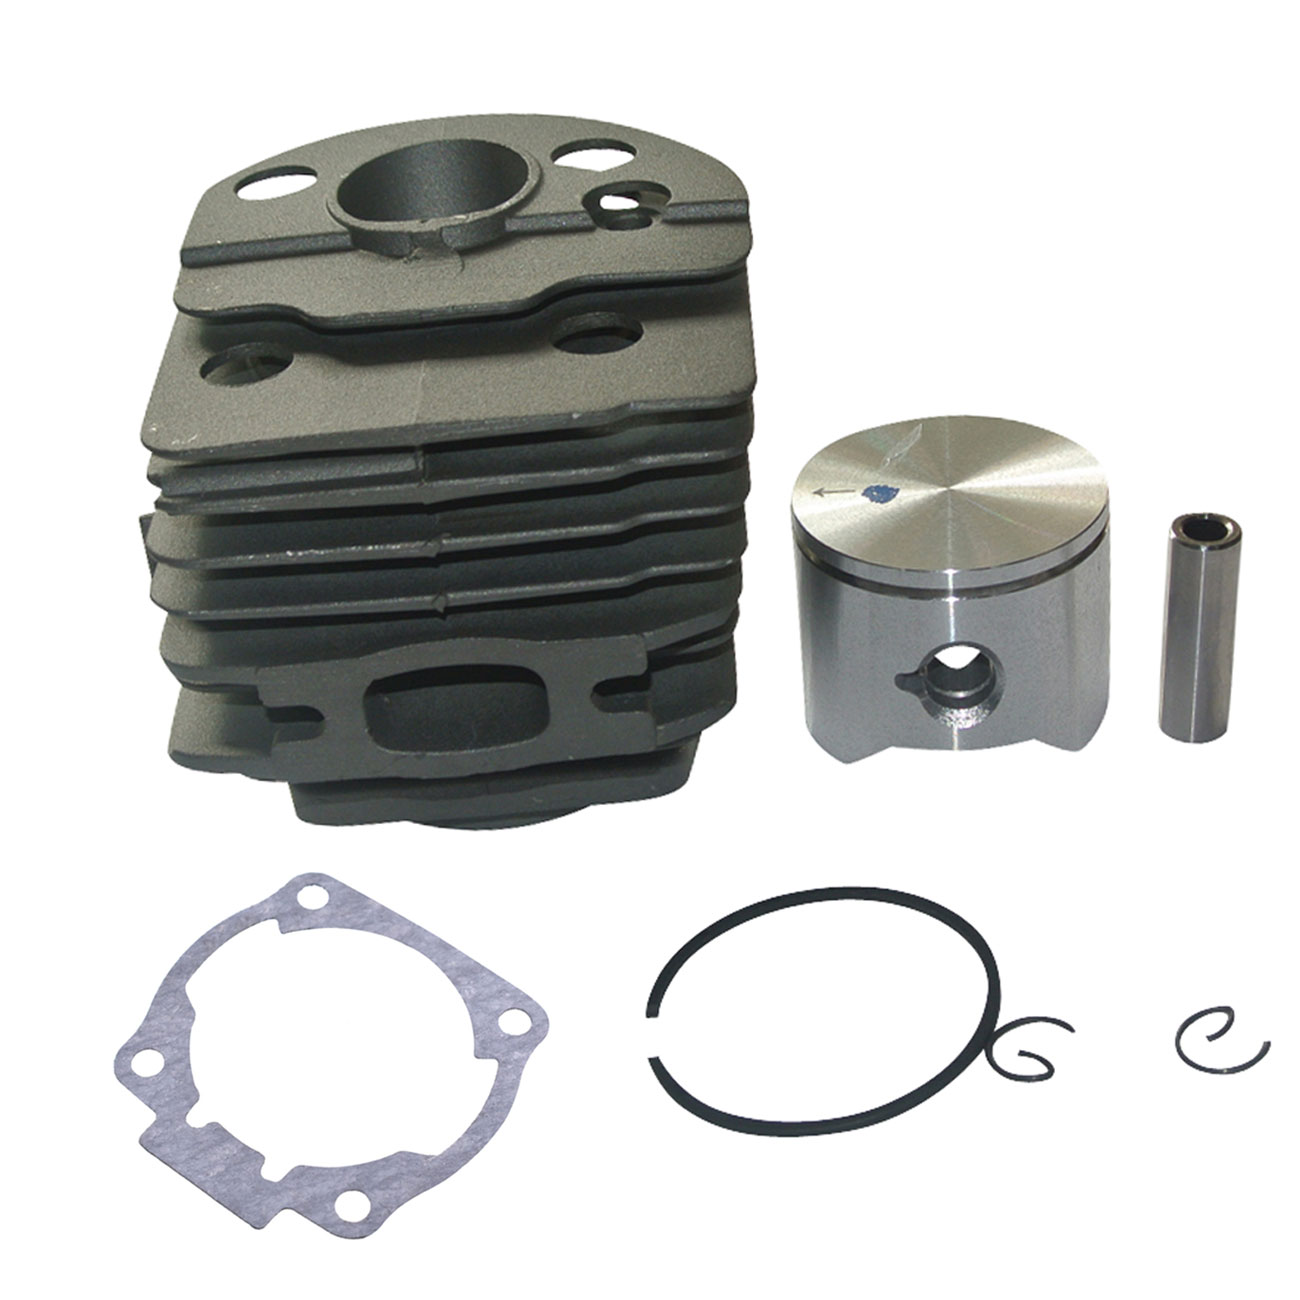 45mm Engine Motor Cylinder Piston Rings Kit For Husqvarna 55 51 50 Chainsaw 56mm big bore cylinder piston for husqvarna chainsaw 395 395xp 395epa engine 503993971 savior brand new top sale in usa uk